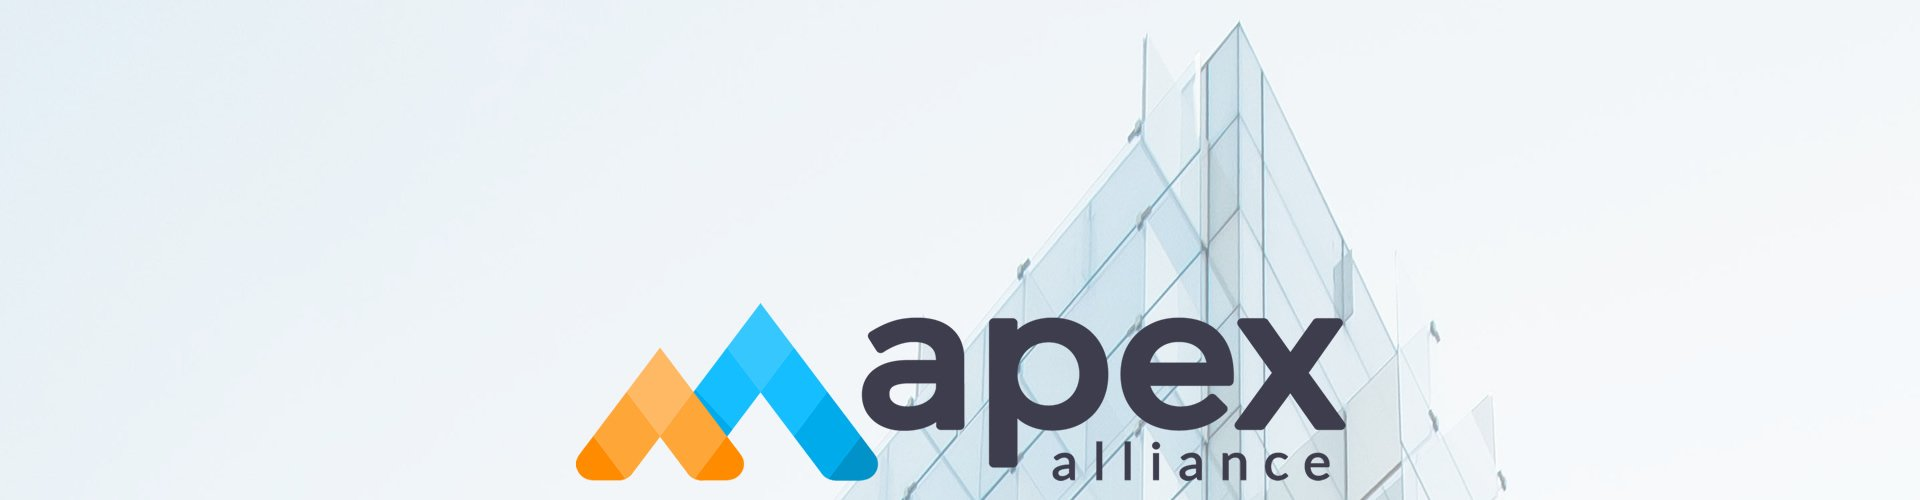 Apex Alliance Microsoft Gold Partners